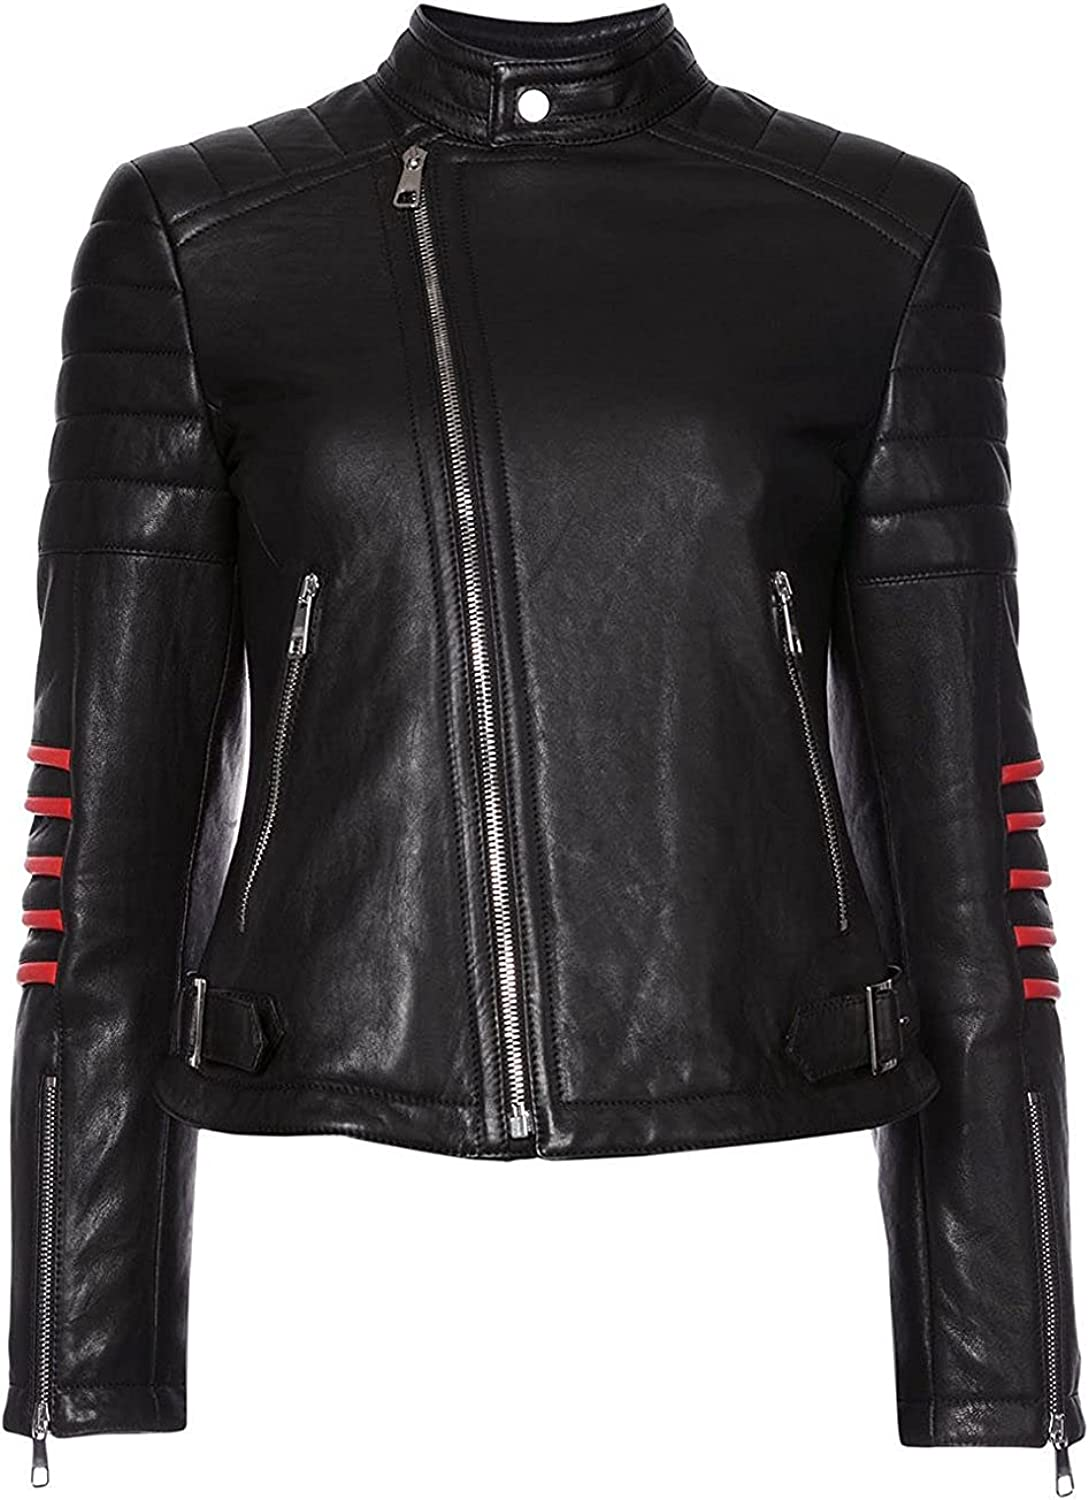 Fashionsta Craze Biker Quilted Long Sleeves Leather Jacket for Women - Jacket for Women Black